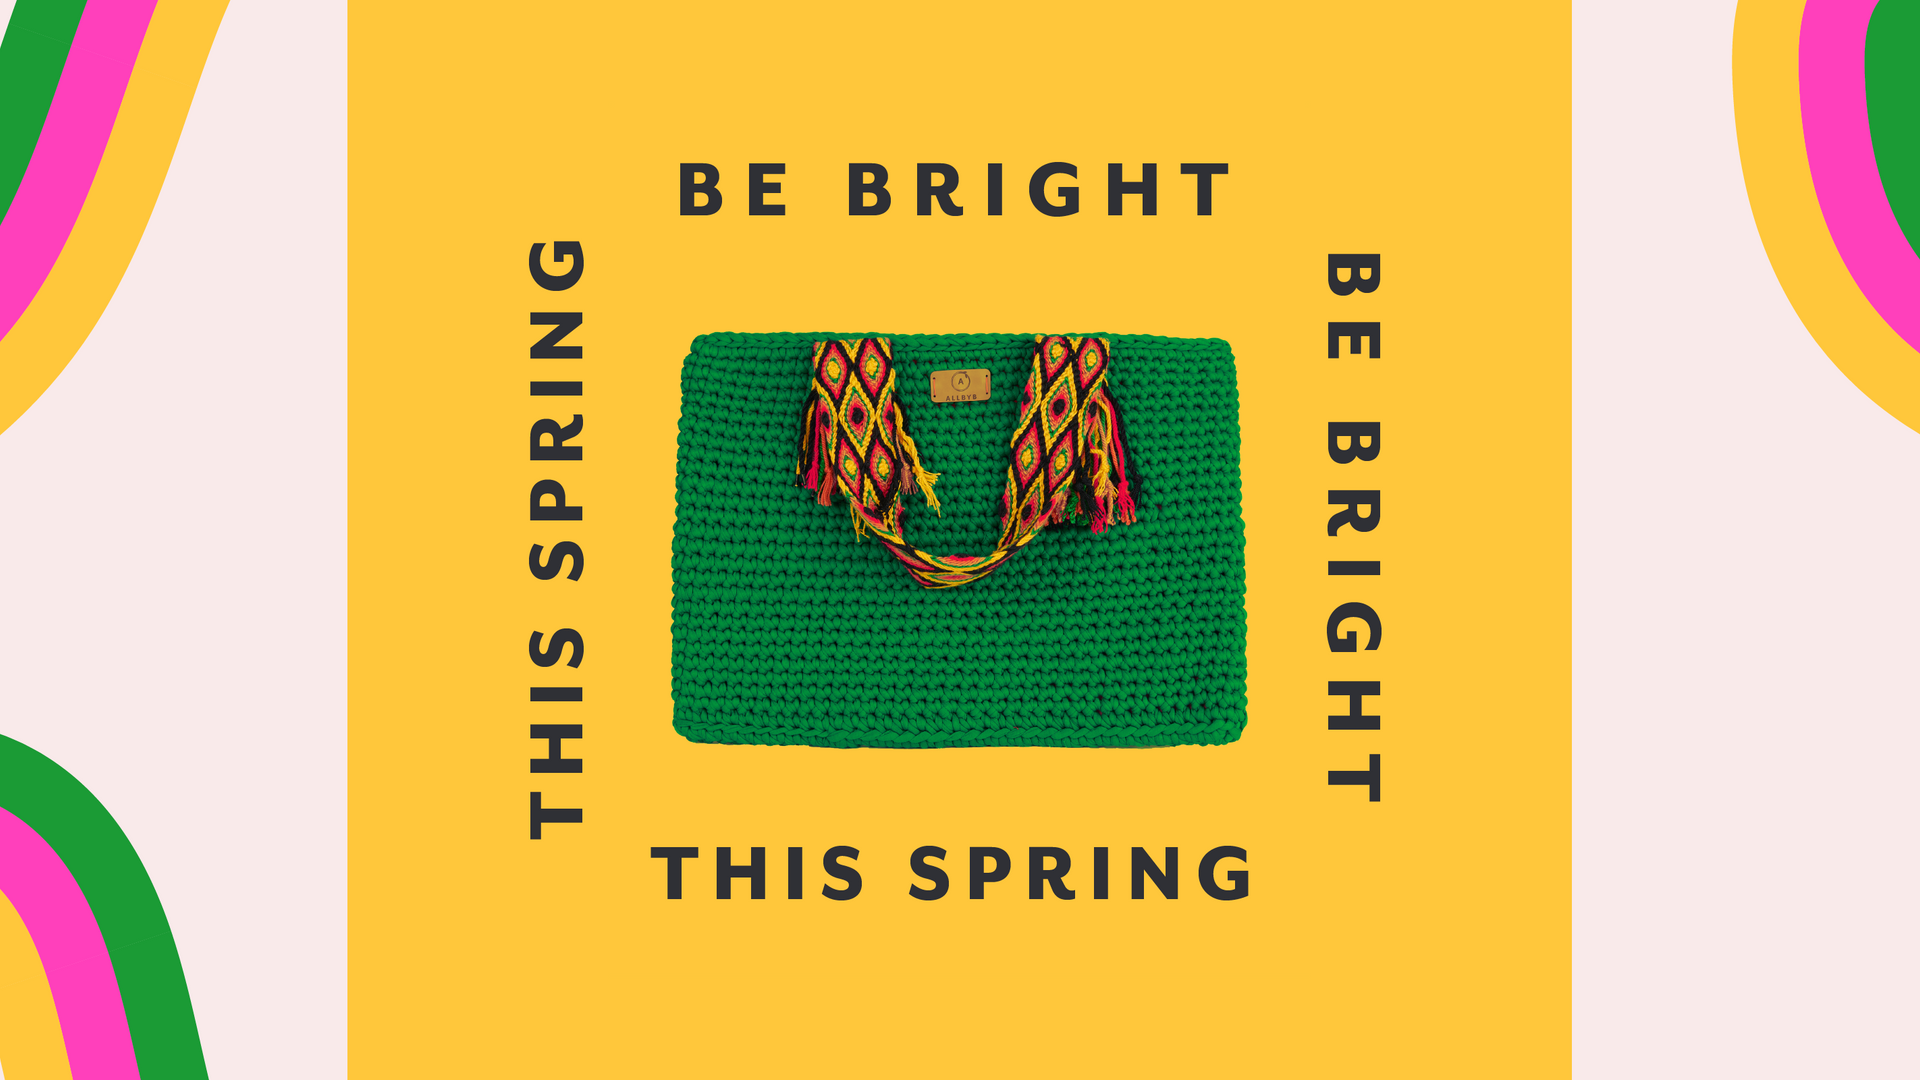 Be bright this spring